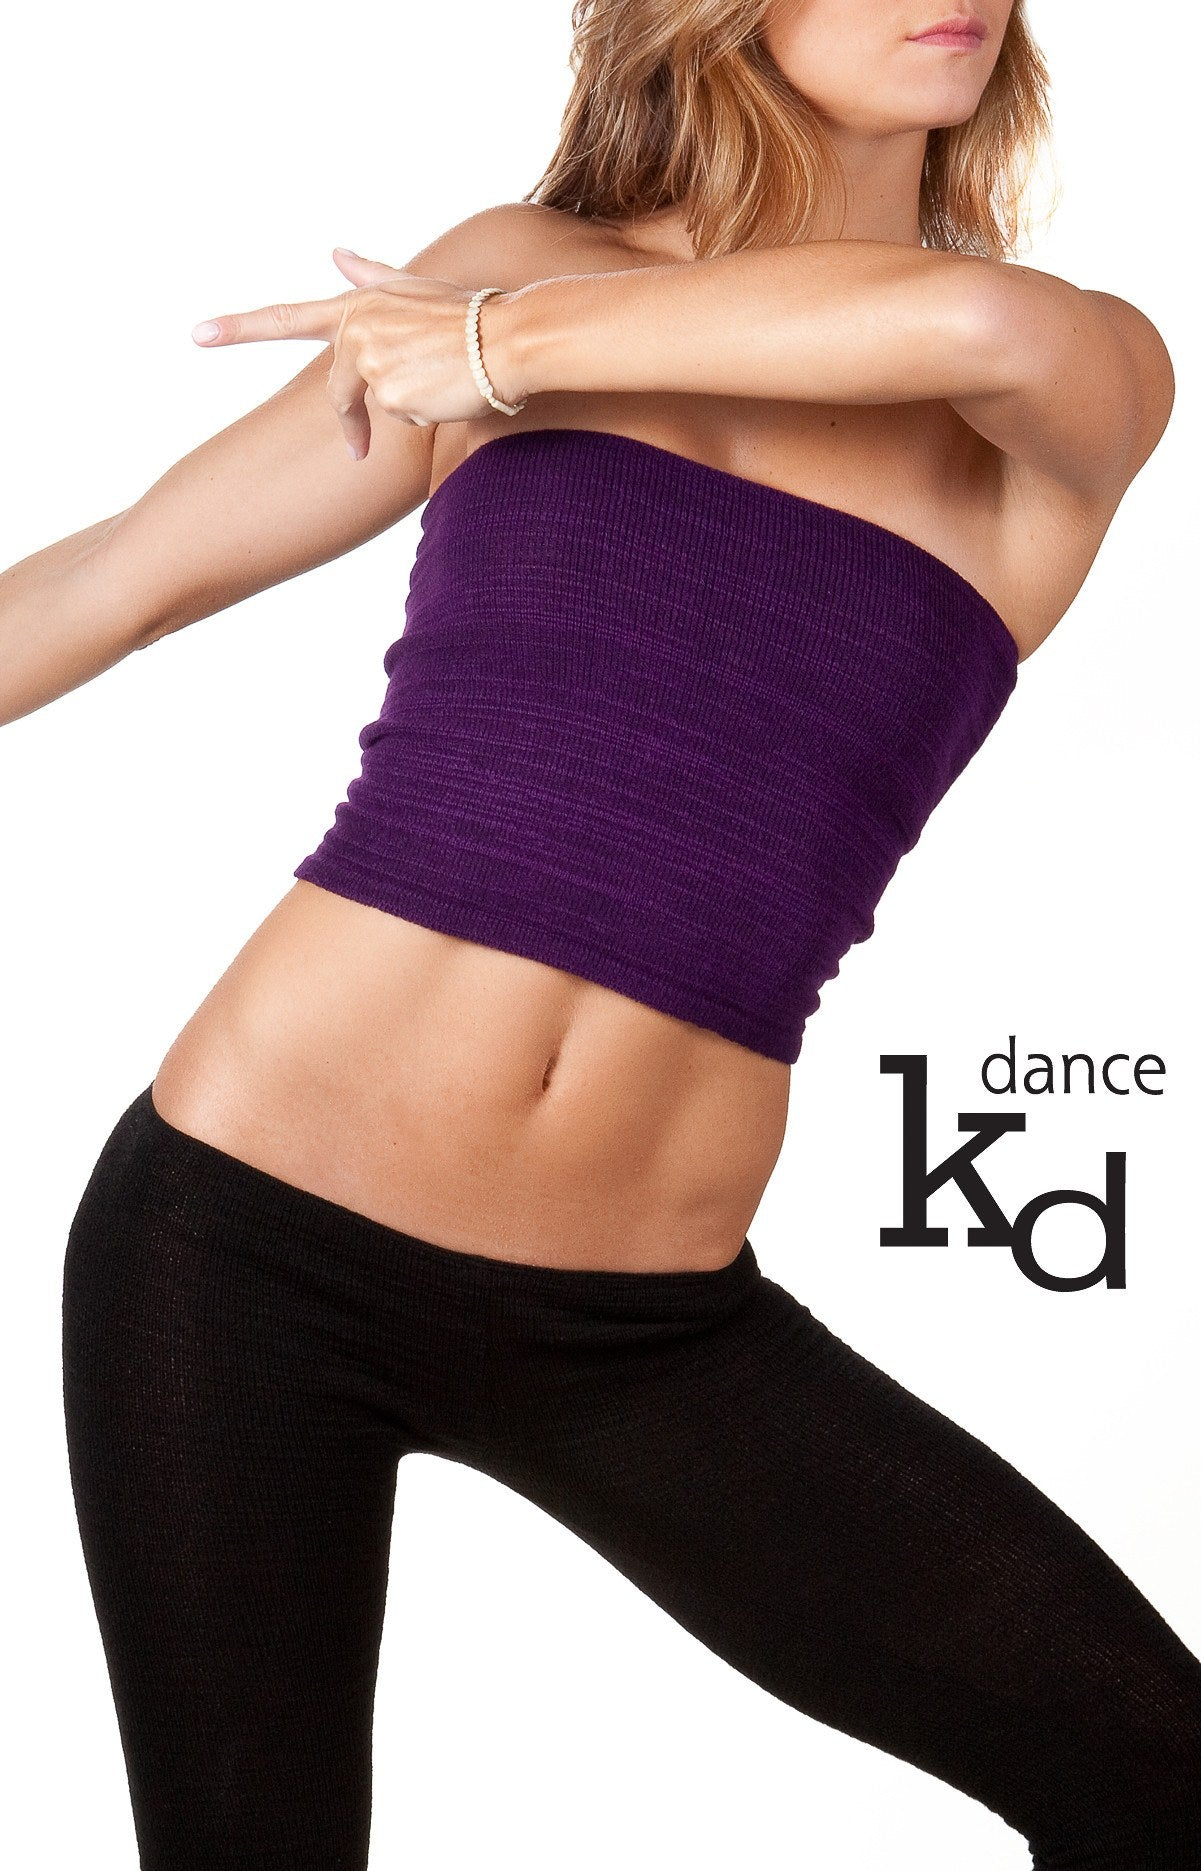 Sexy Stretch Knit Tube Top Fashionable For Any Occasion Layer, Dance, Yoga, Chill Made In USA